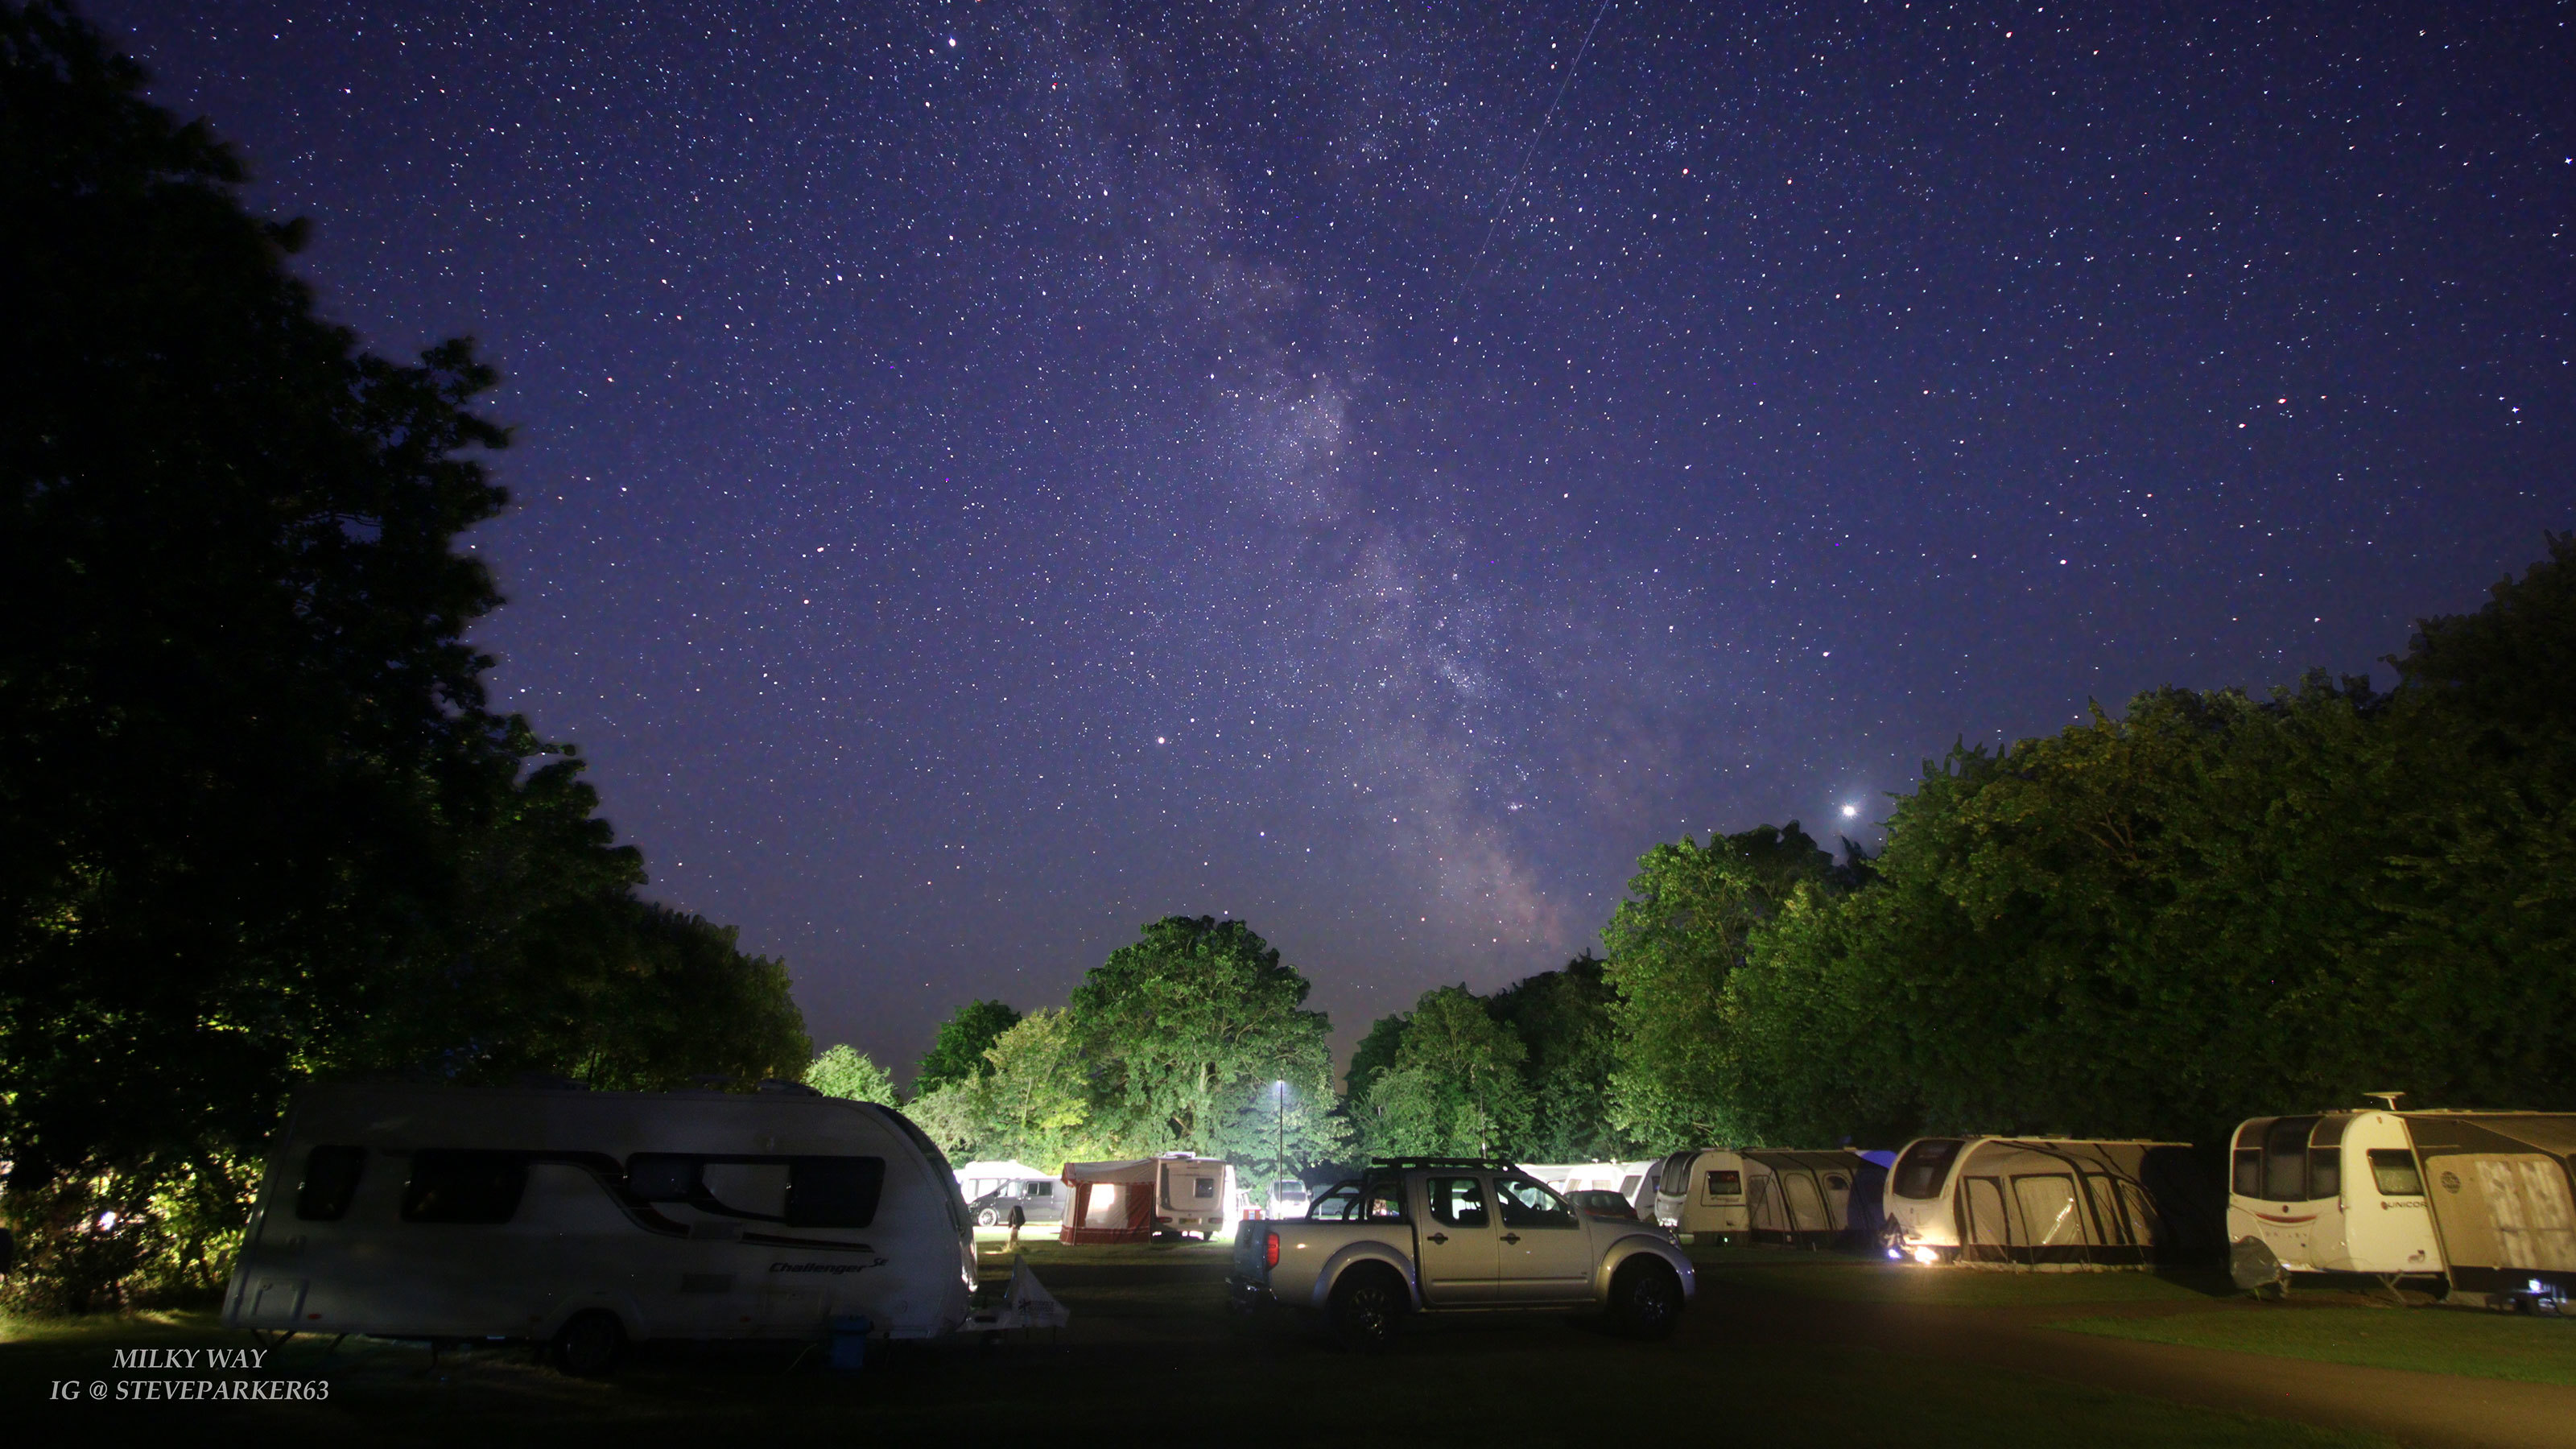 The-Milky-Way-above-Lytton-Lawn-Touring-Park